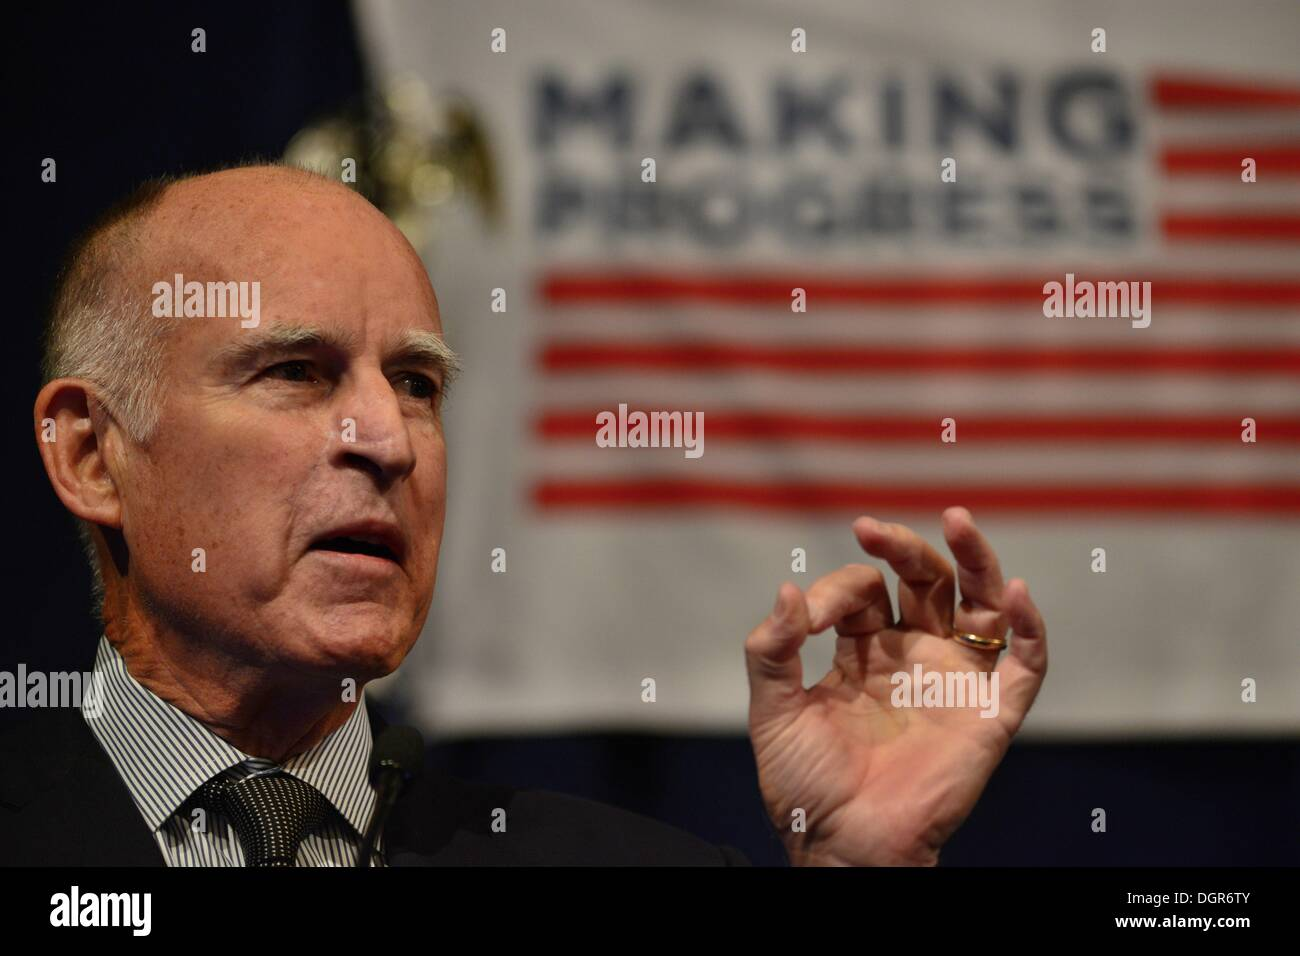 Washington, District of Columbia, US, USA. 24th Oct, 2013. California Governor JERRY BROWN speaks at the Center for American Progress, an independent think tank celebrating its 10th anniversary with a policy conference. Brown spoke about governance in California, and how the state has tried to move past its infamous political dysfunction. © Miguel Juarez Lugo/ZUMAPRESS.com/Alamy Live News - Stock Image